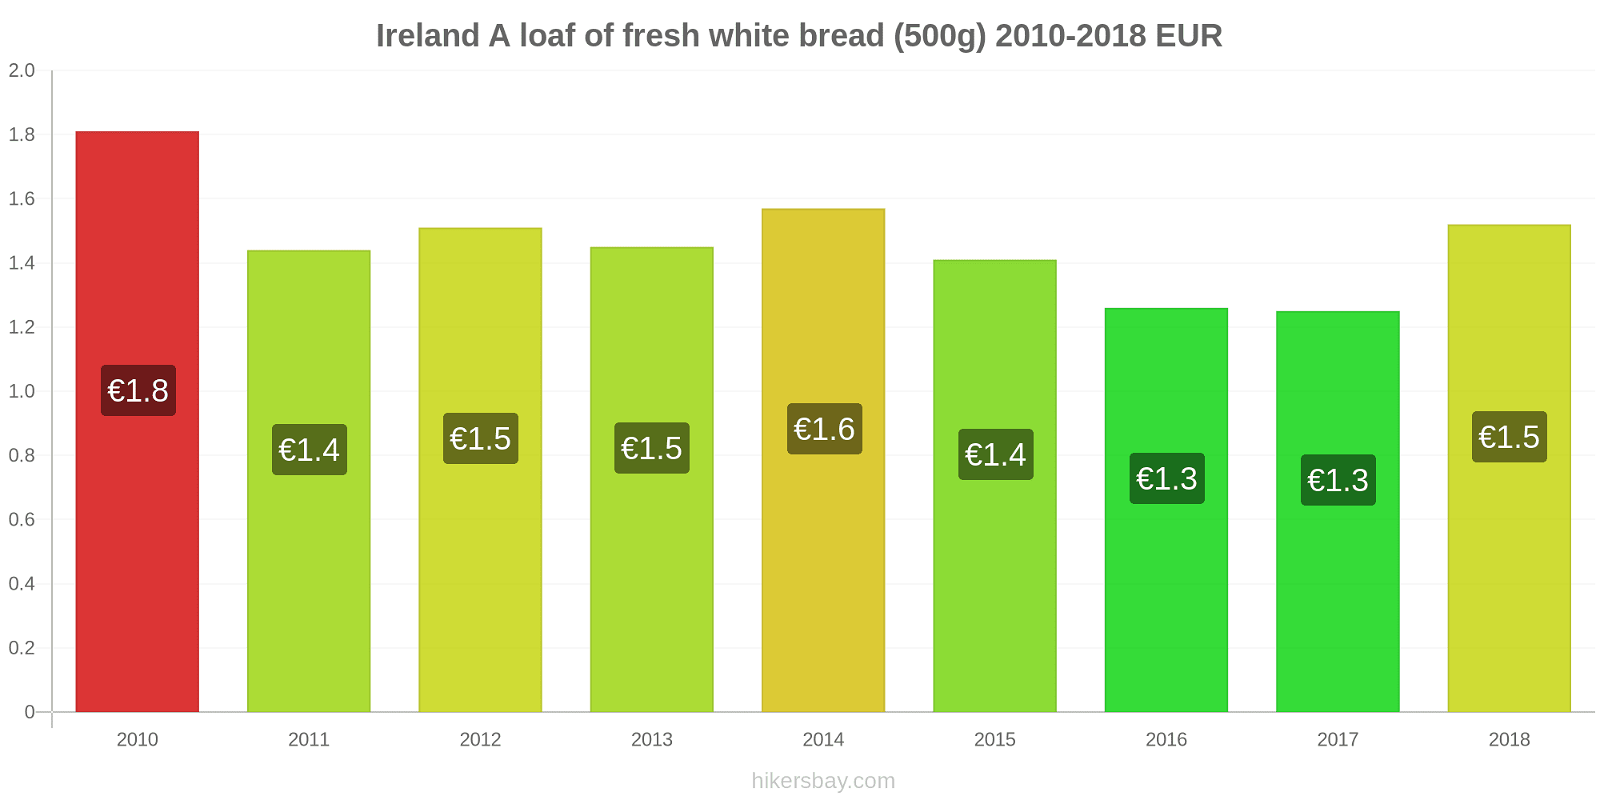 Ireland price changes A loaf of fresh white bread (500g) hikersbay.com